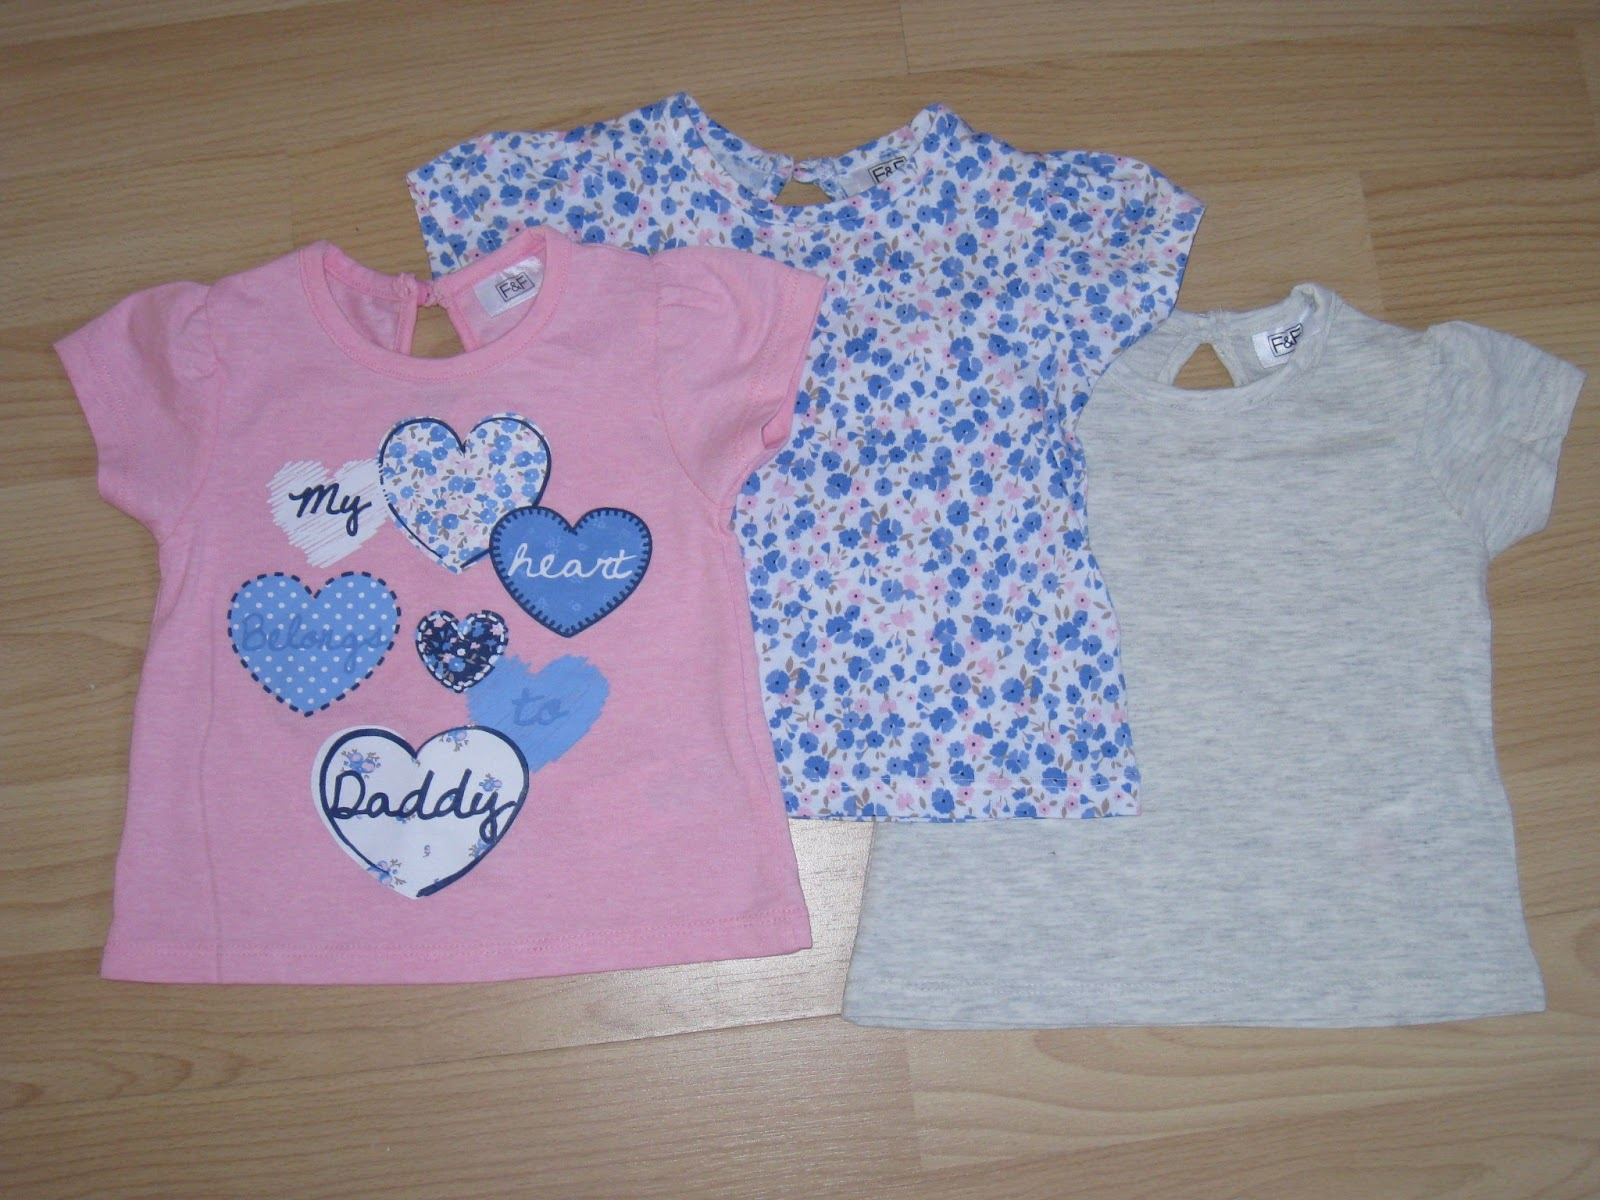 Oct 15, · Baby clothes sale in Tesco, loads of stuff 50% off spend over �25 and use code UES5OFF25 to get �5 off. Just got loads of pretty outfits for �21 and f.